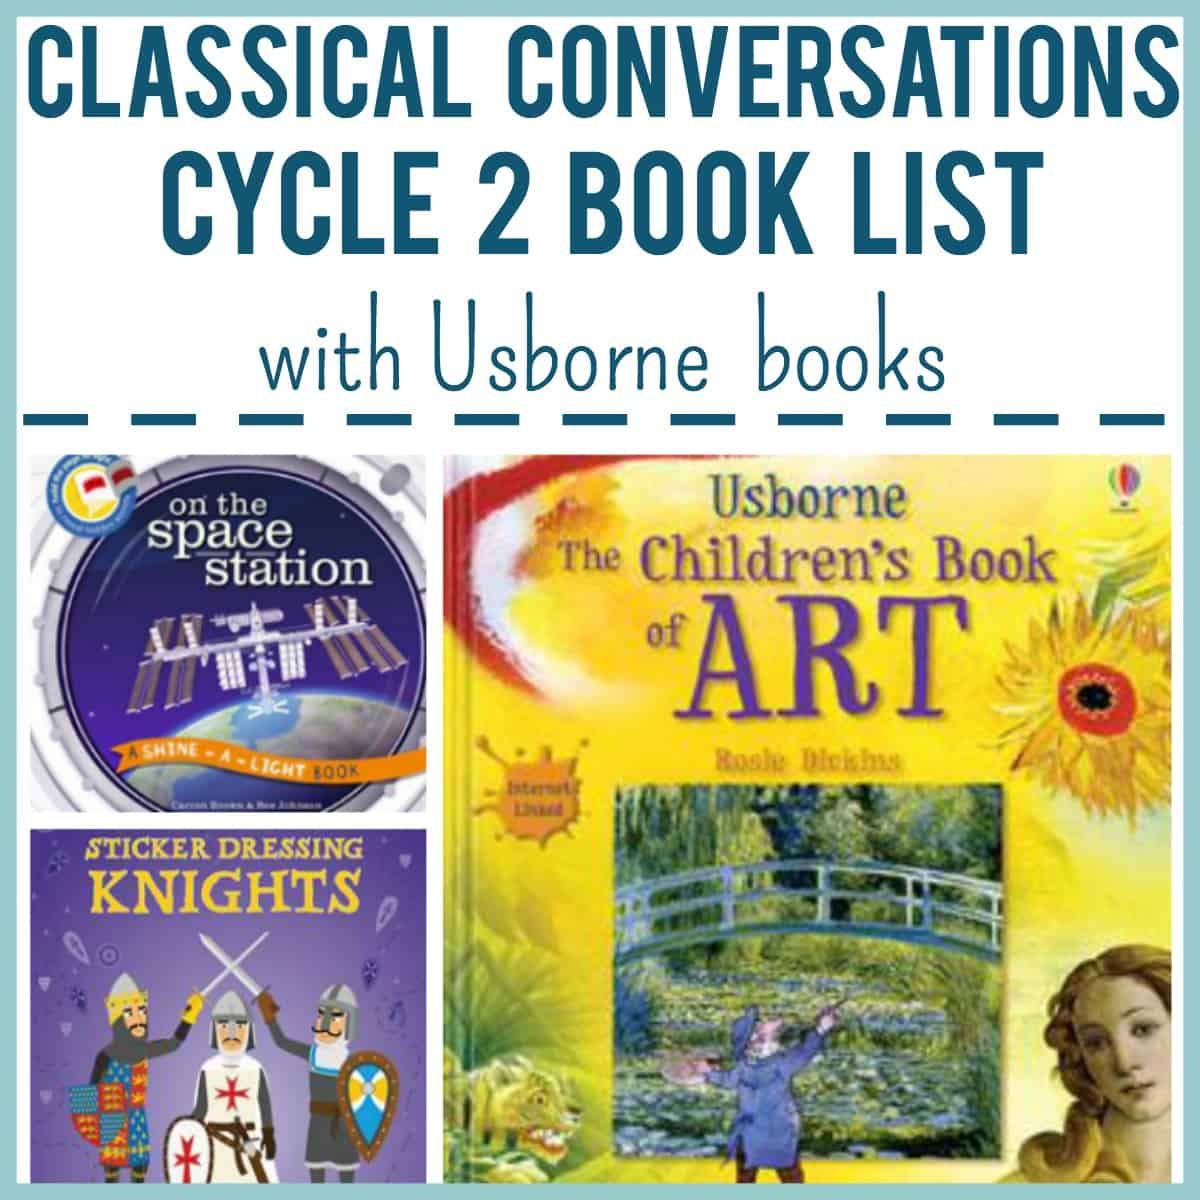 Classical Conversations Cycle 2 Book List